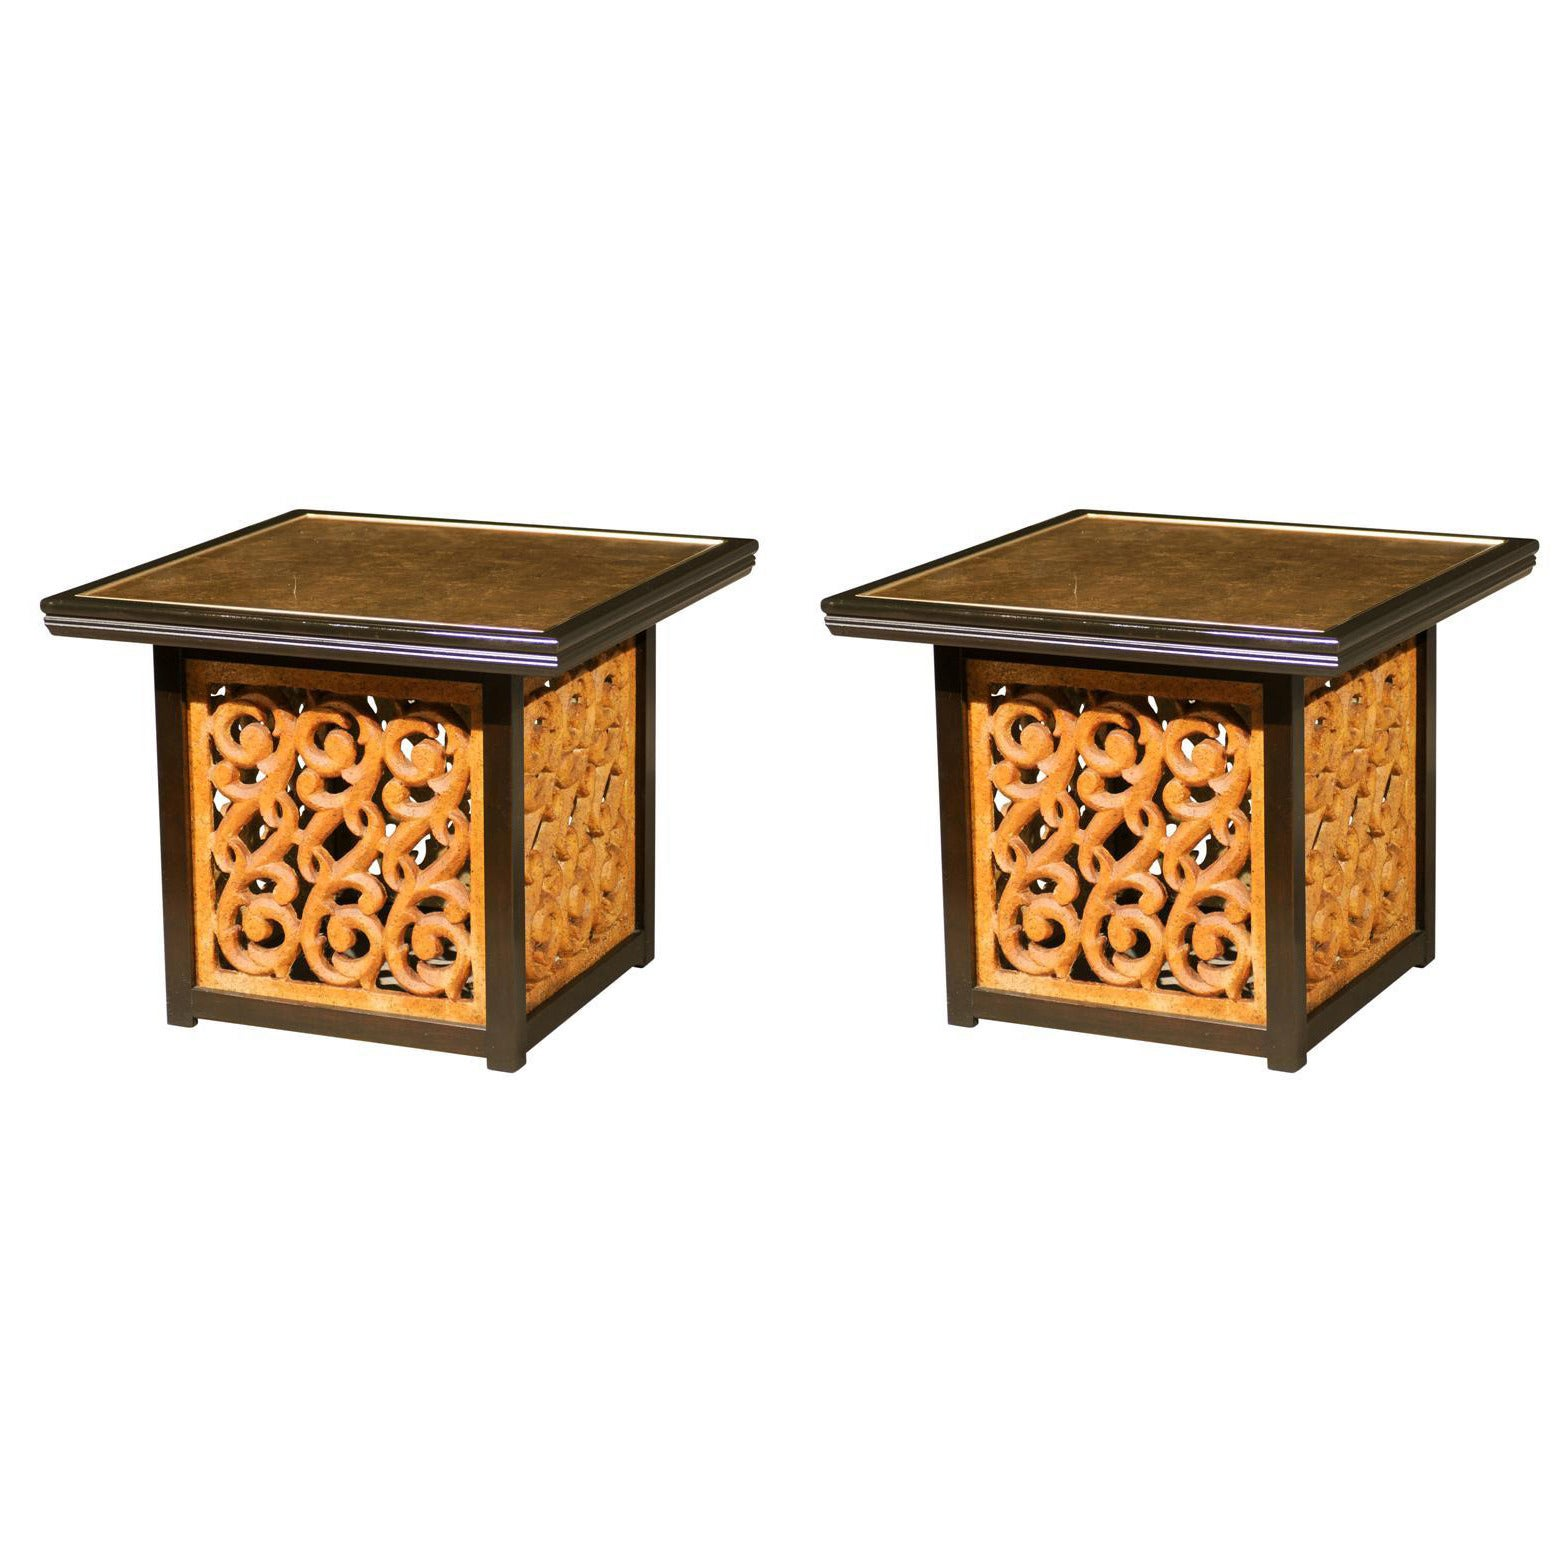 Spectacular Pair of Mediterranean Style End or Coffee Tables by Widdicomb